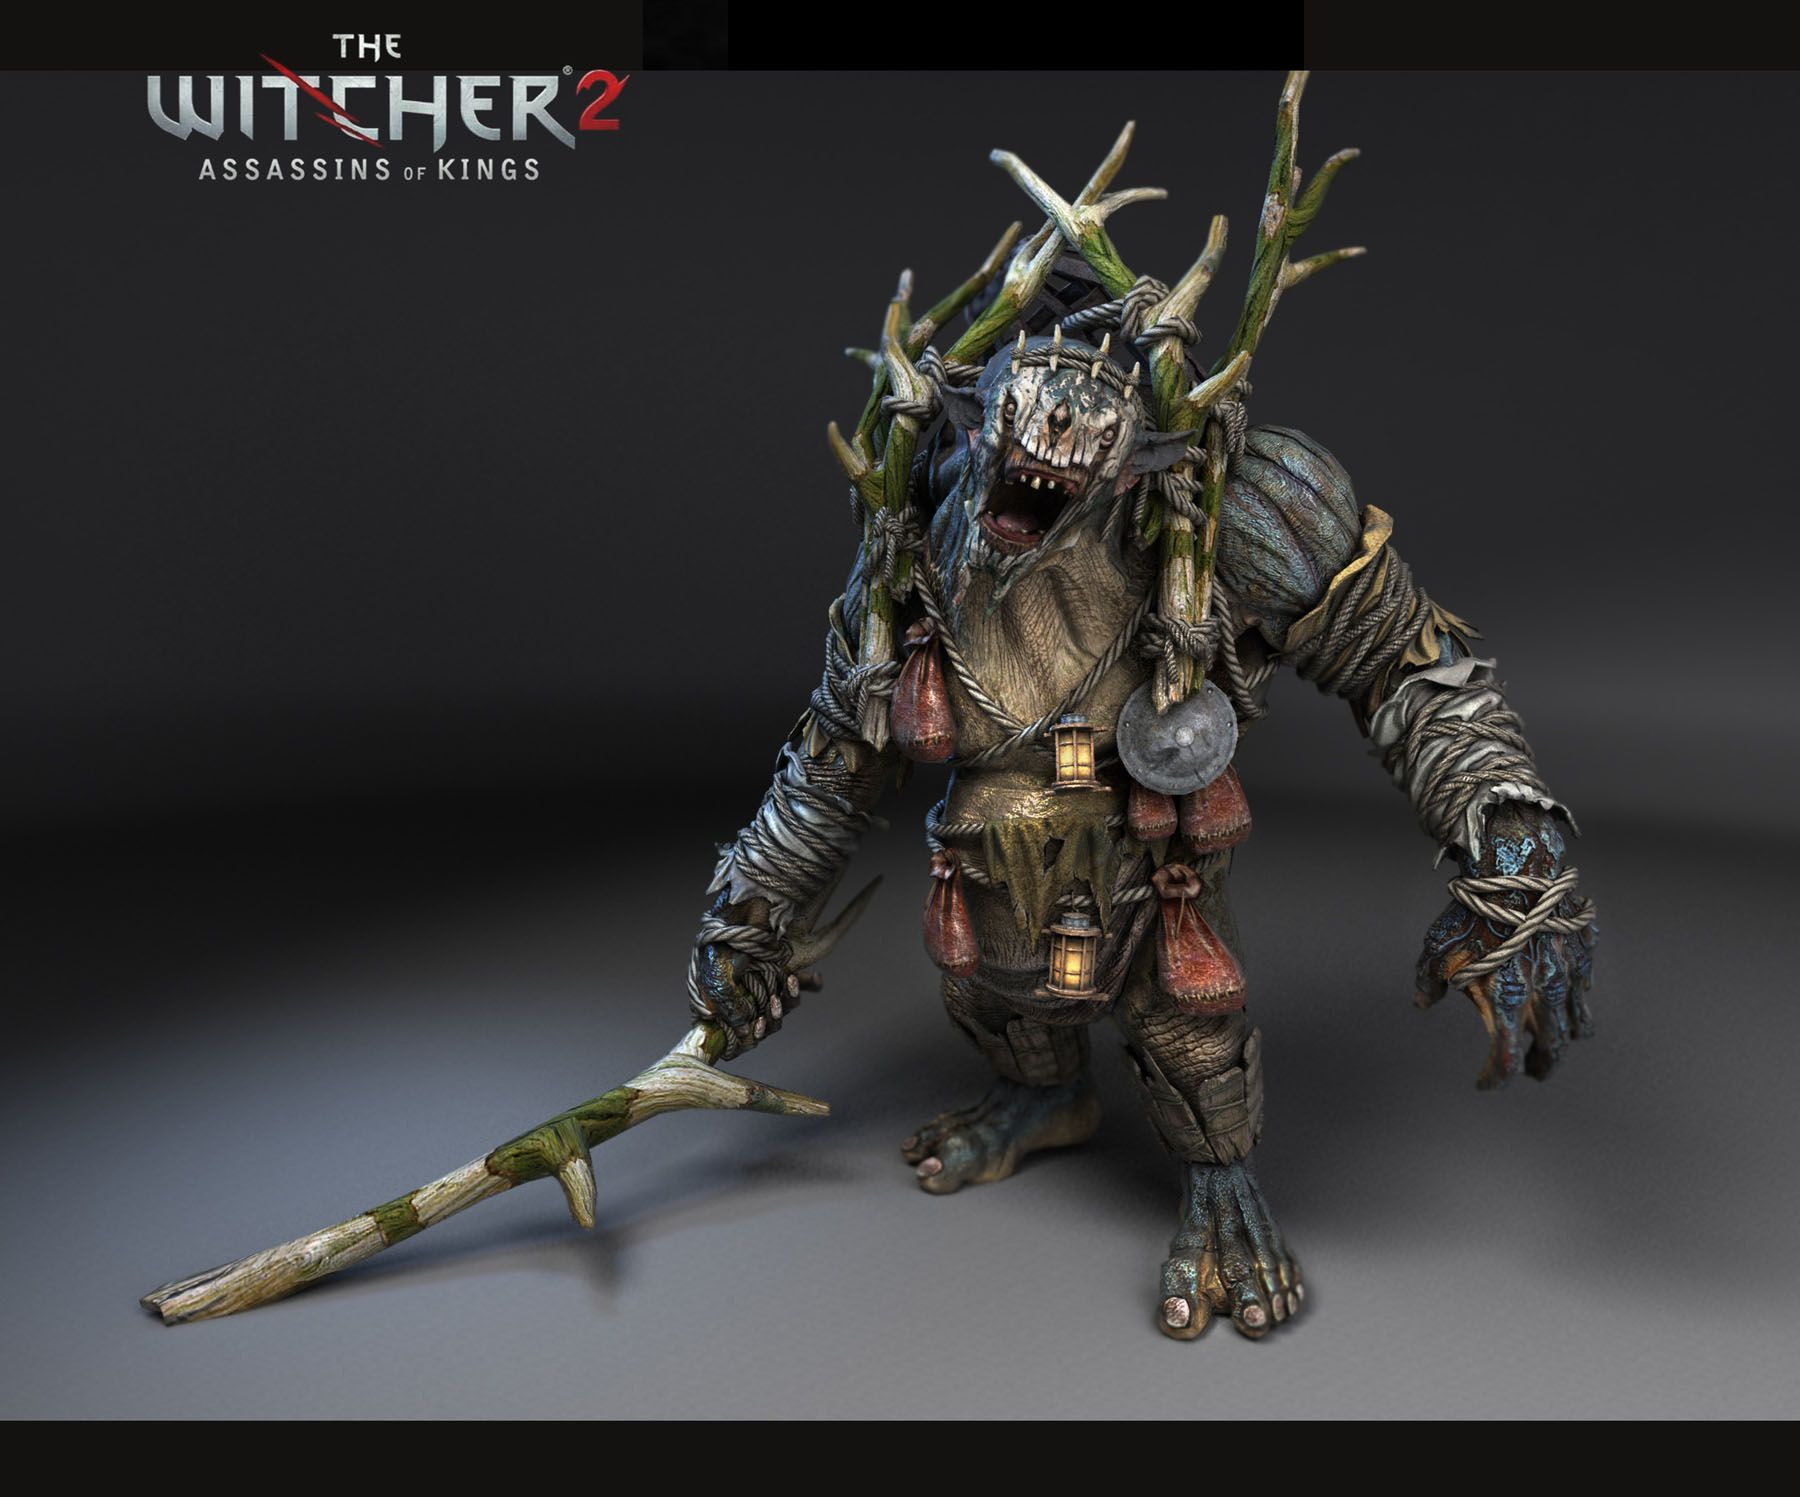 Witcher 2 Assasins of Kings models